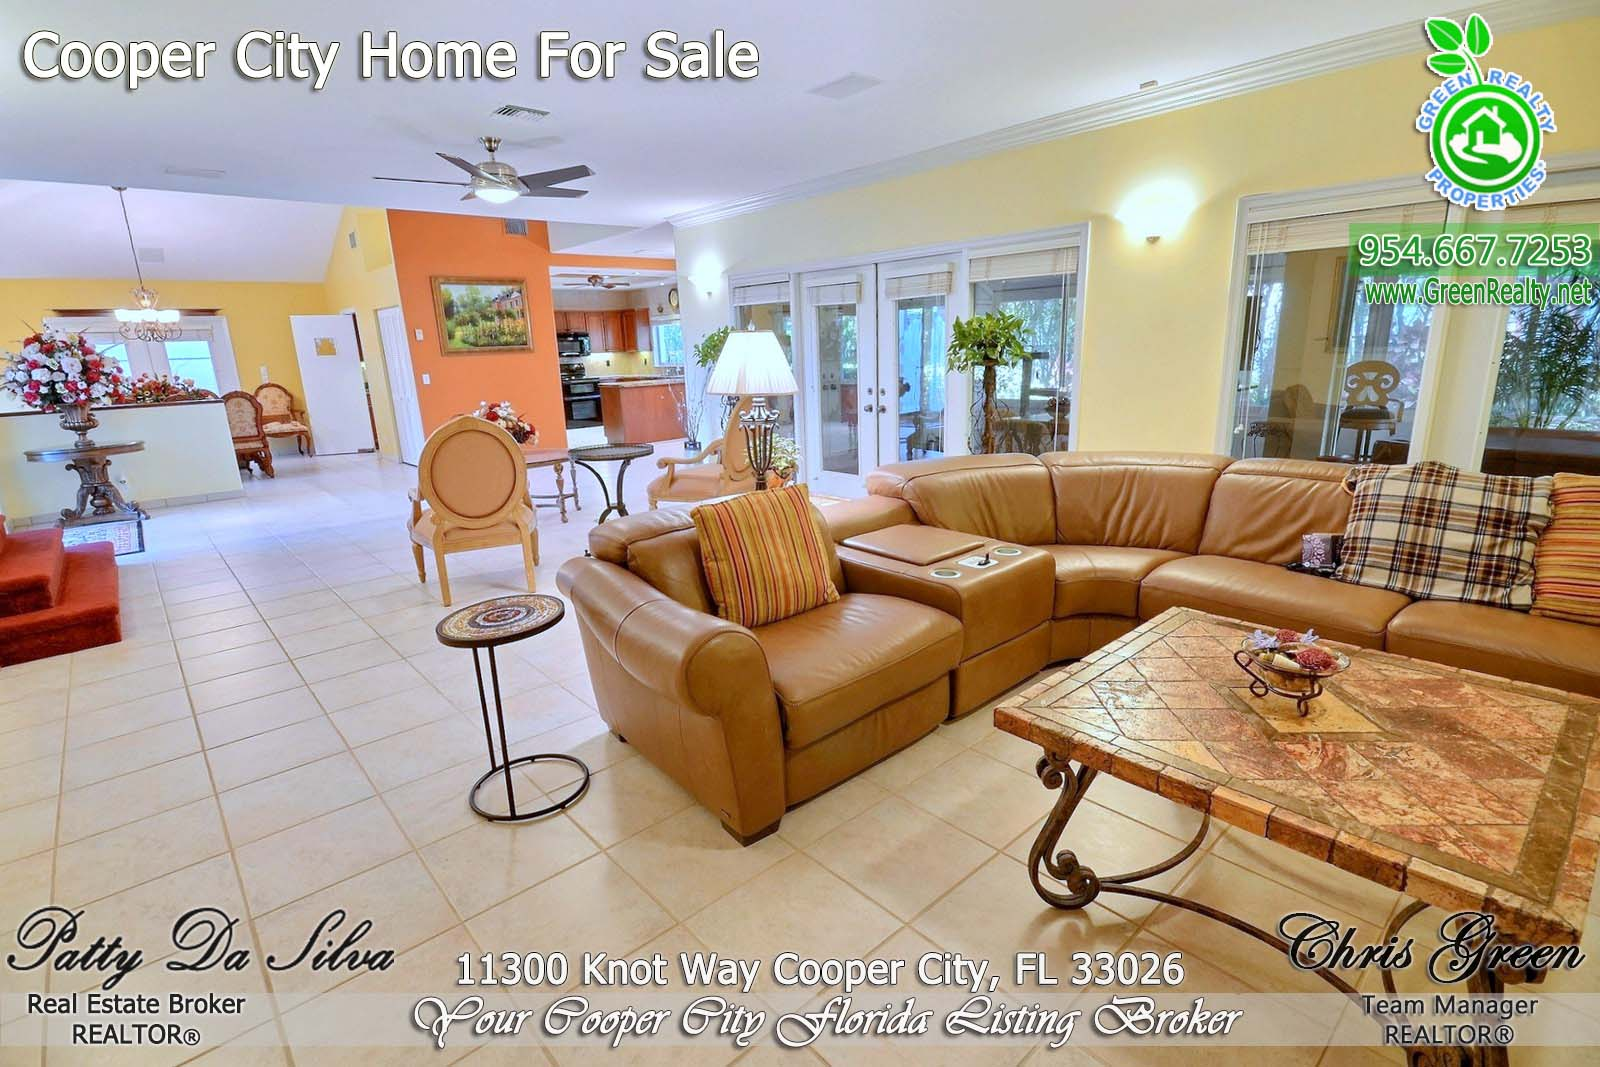 15 Cooper City Real Estate Agents (3)